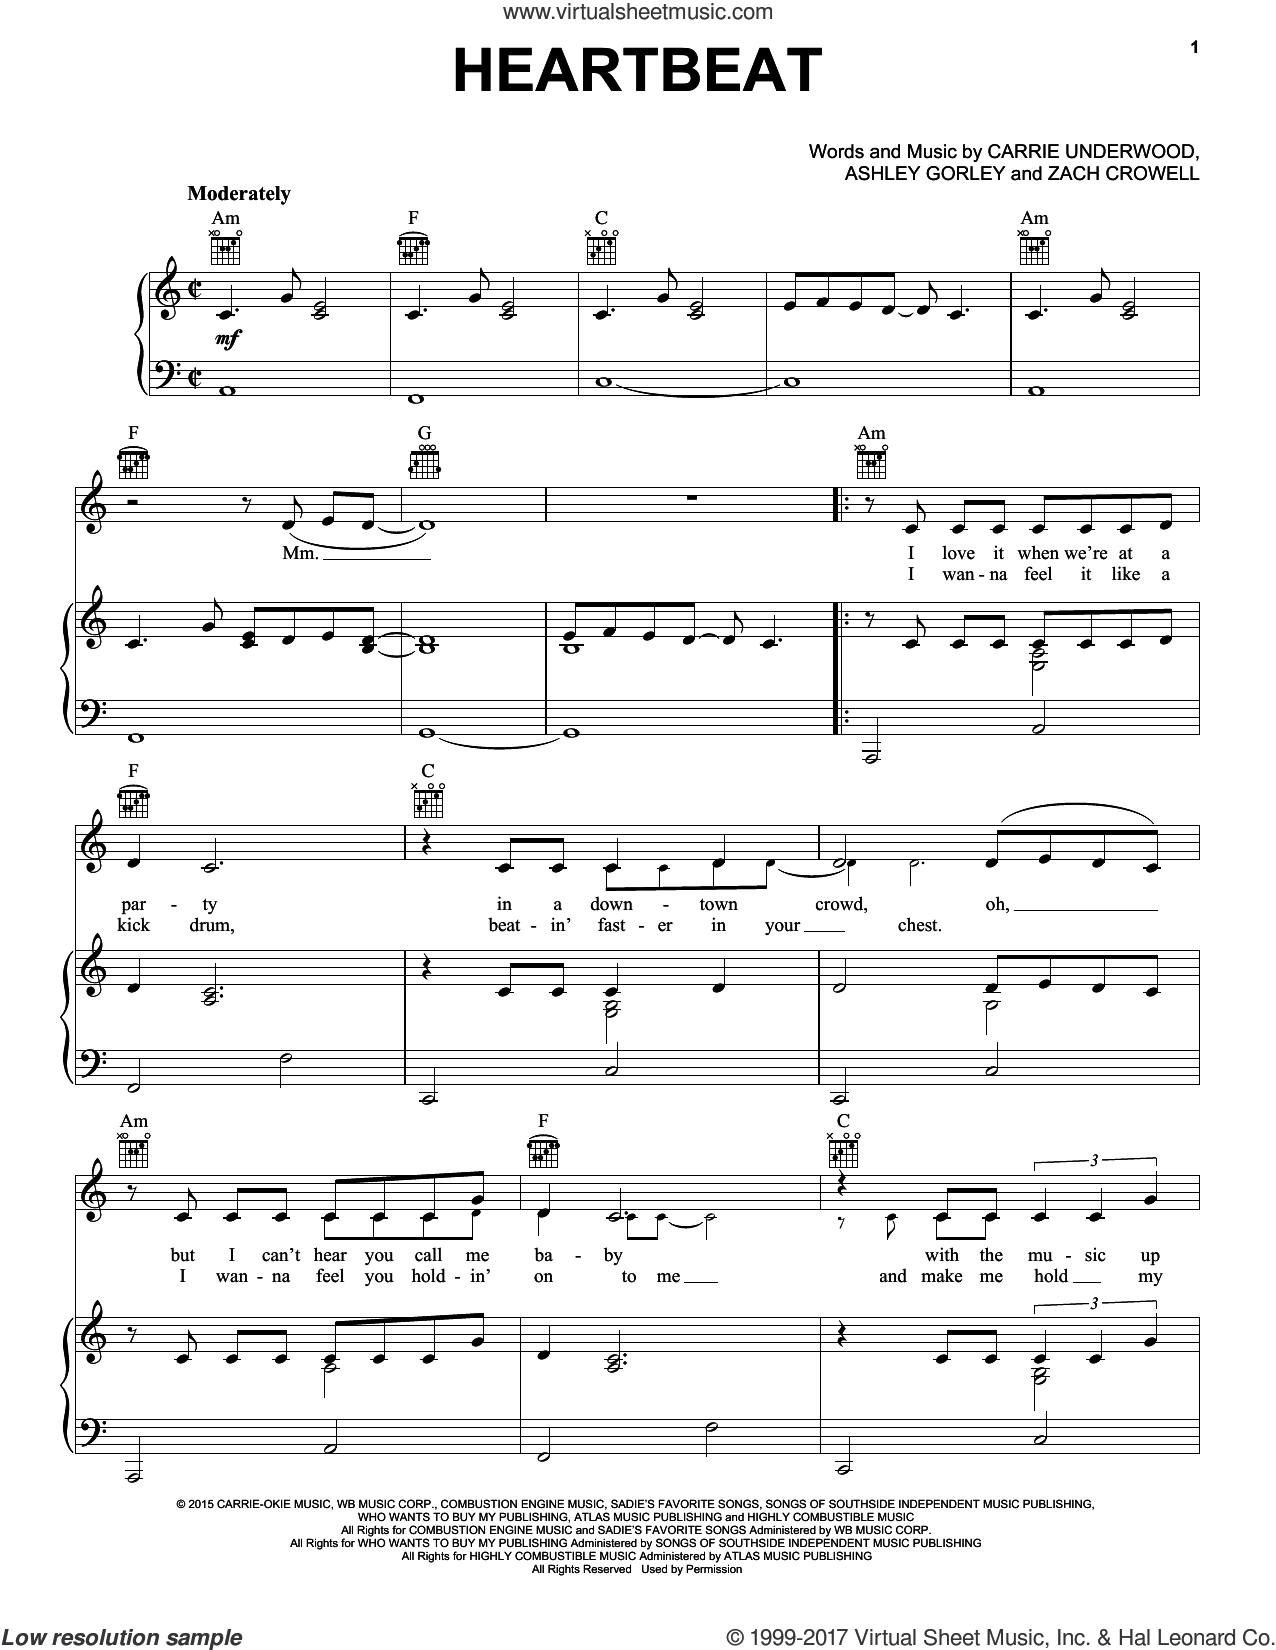 Heartbeat sheet music for voice, piano or guitar by Carrie Underwood, Ashley Gorley and Zach Crowell, intermediate skill level